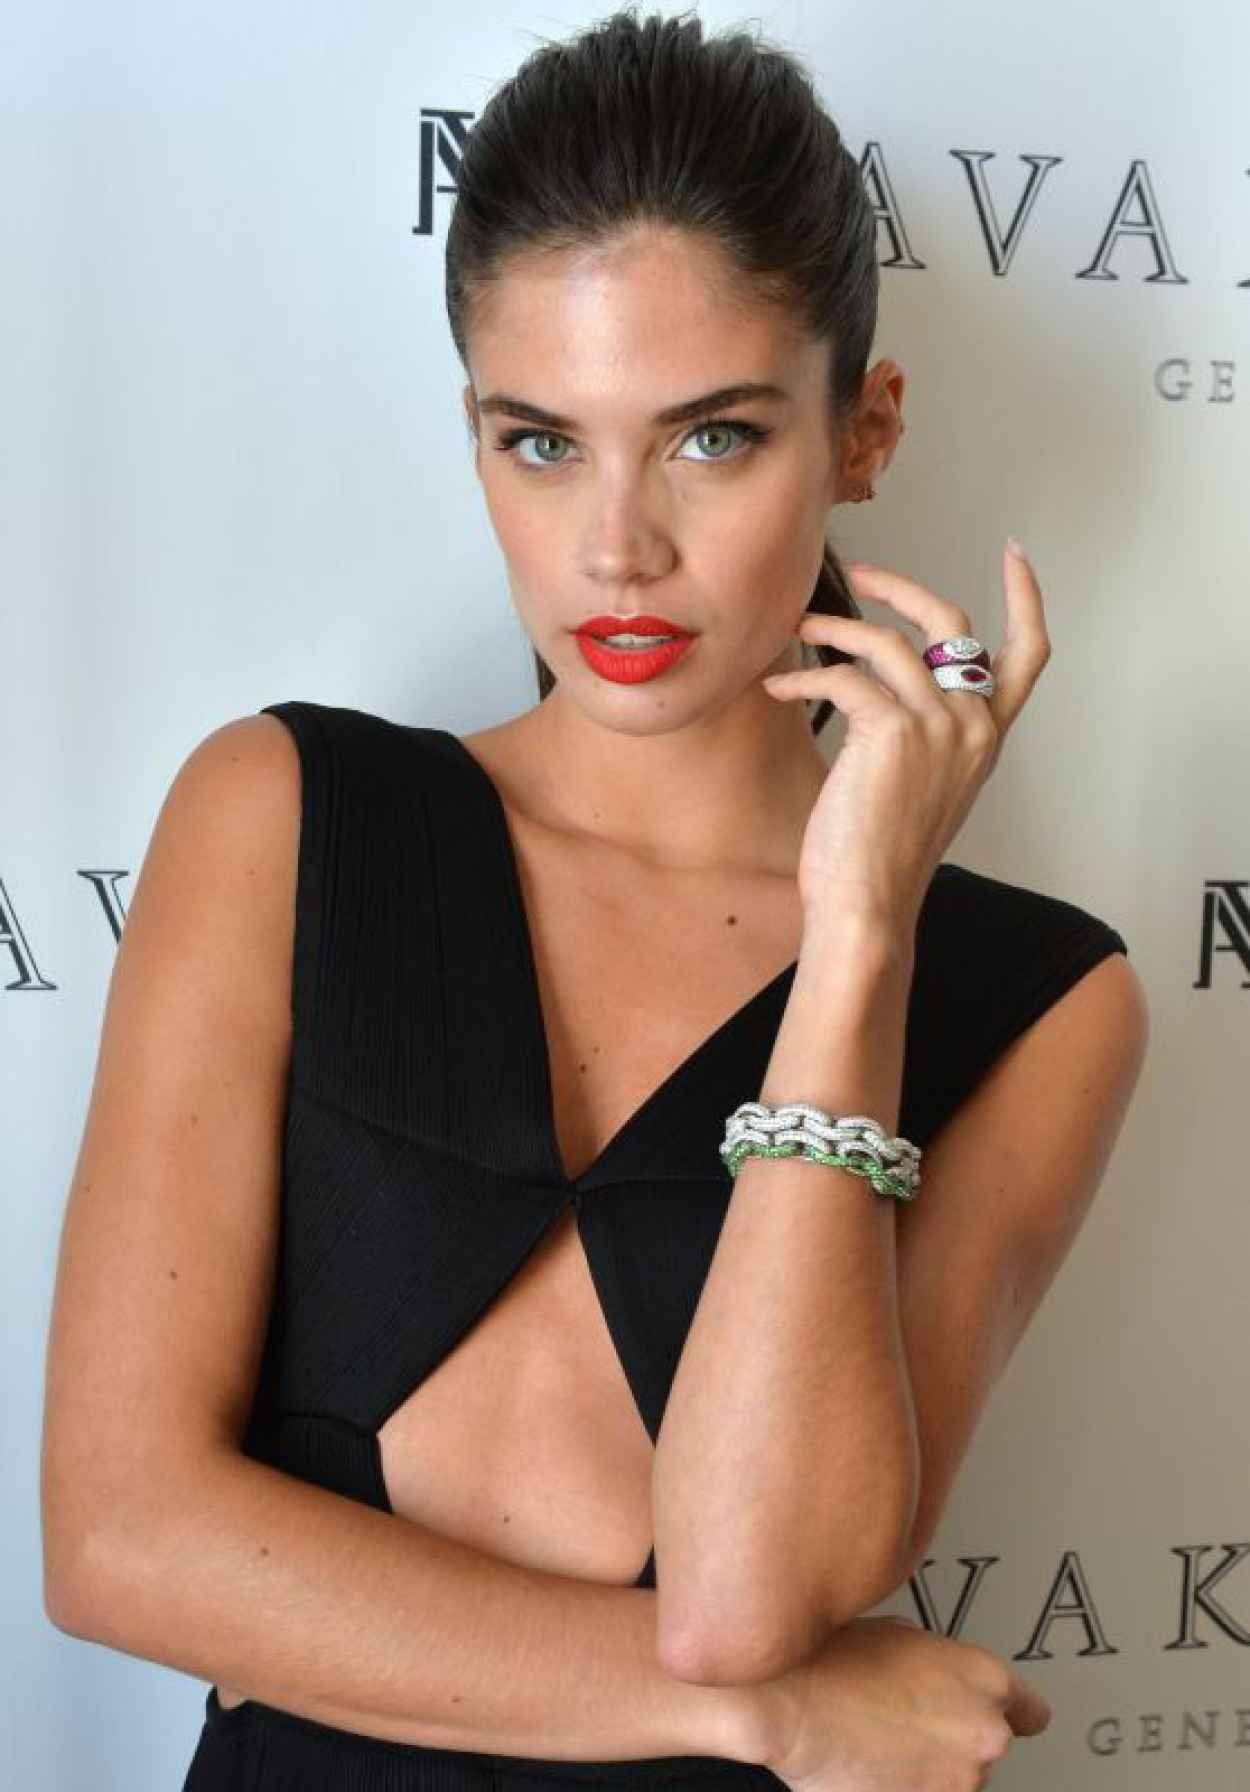 Sara Sampaio - The Avakian Suite in Cannes, 68th Annual Cannes Film Festival-1